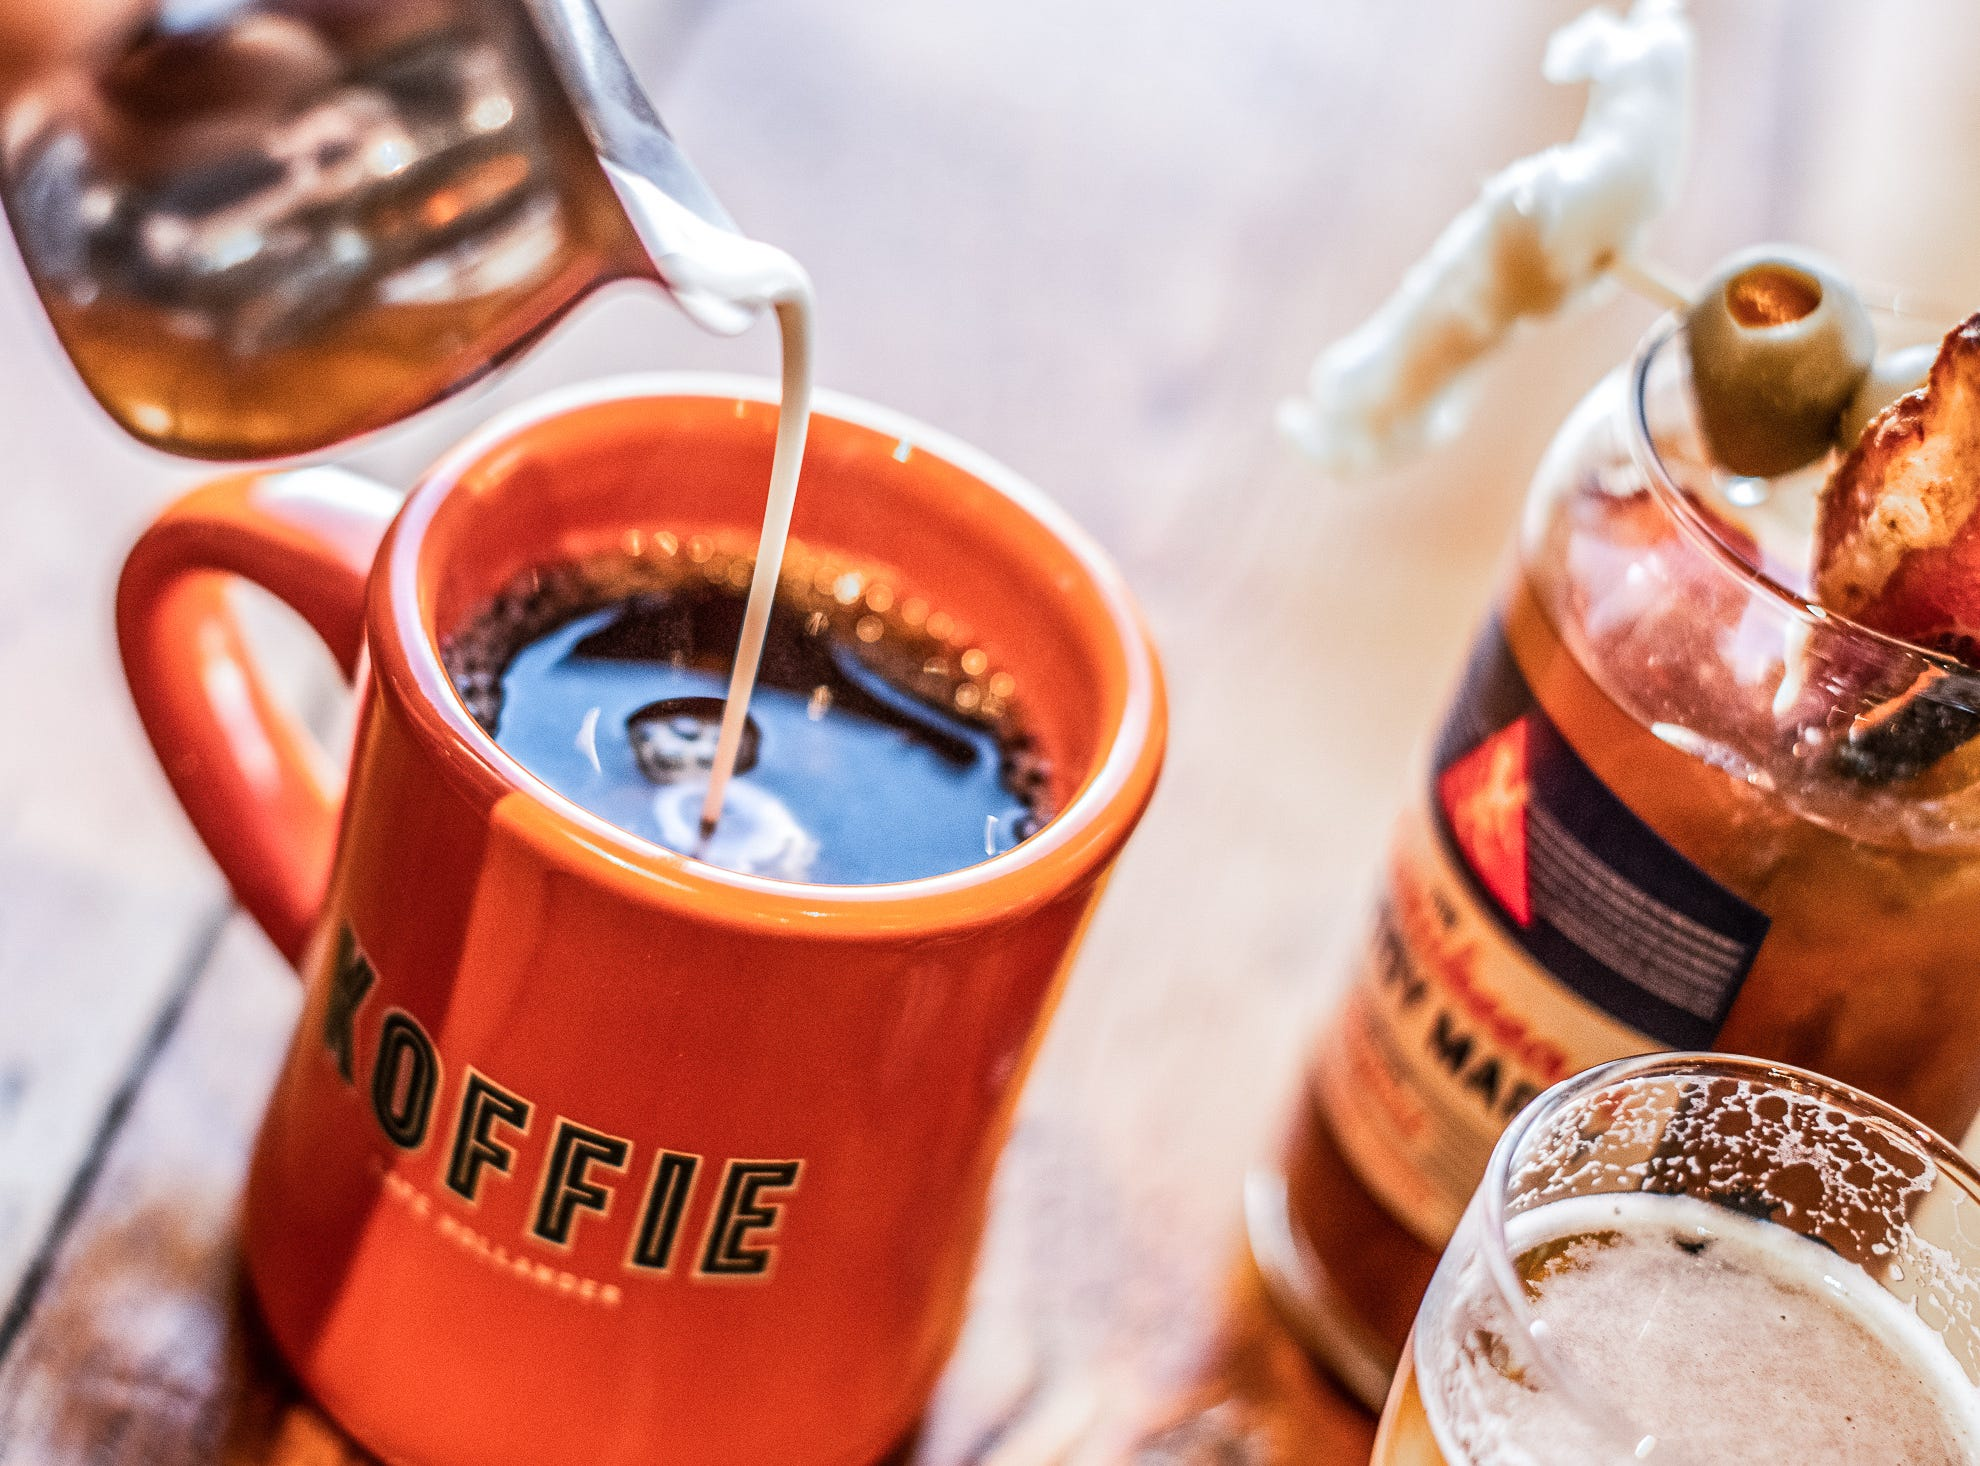 As part of its new brunch, the Lowlands Group also teamed up with Colectivo Coffee for a brand new blend exclusive to Café Hollander.